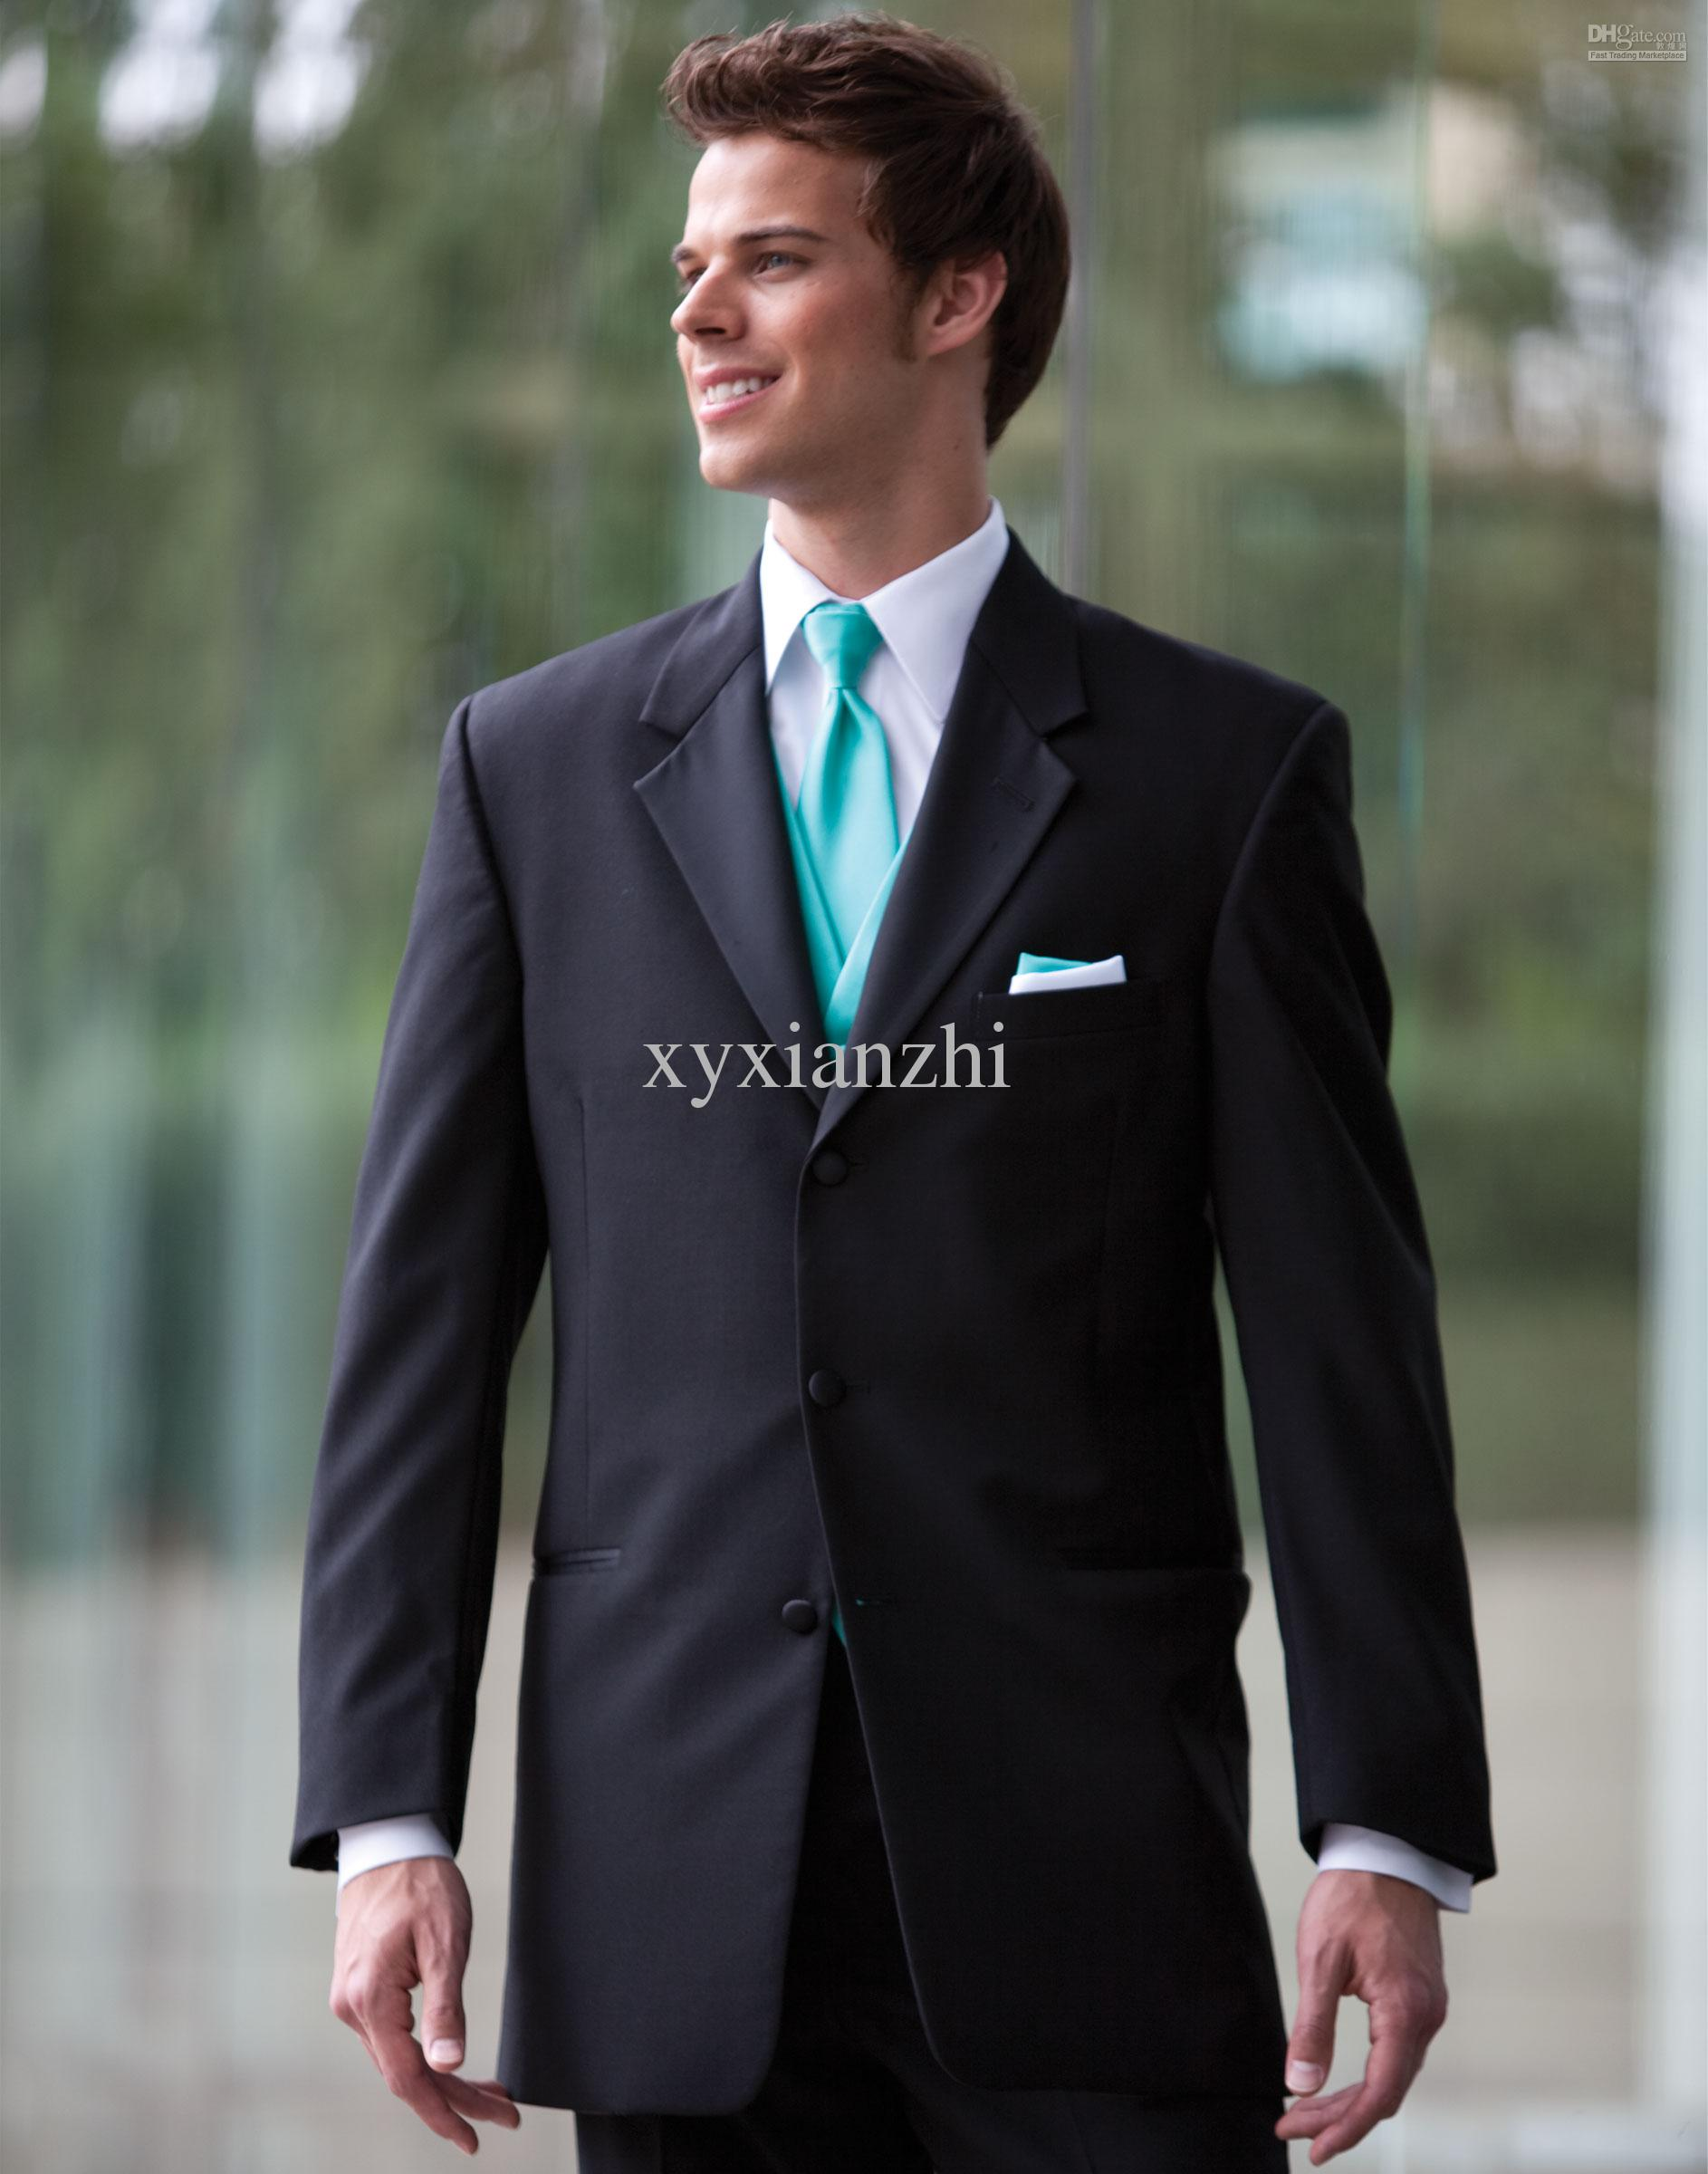 Groom Dress For Wedding 2014 Images